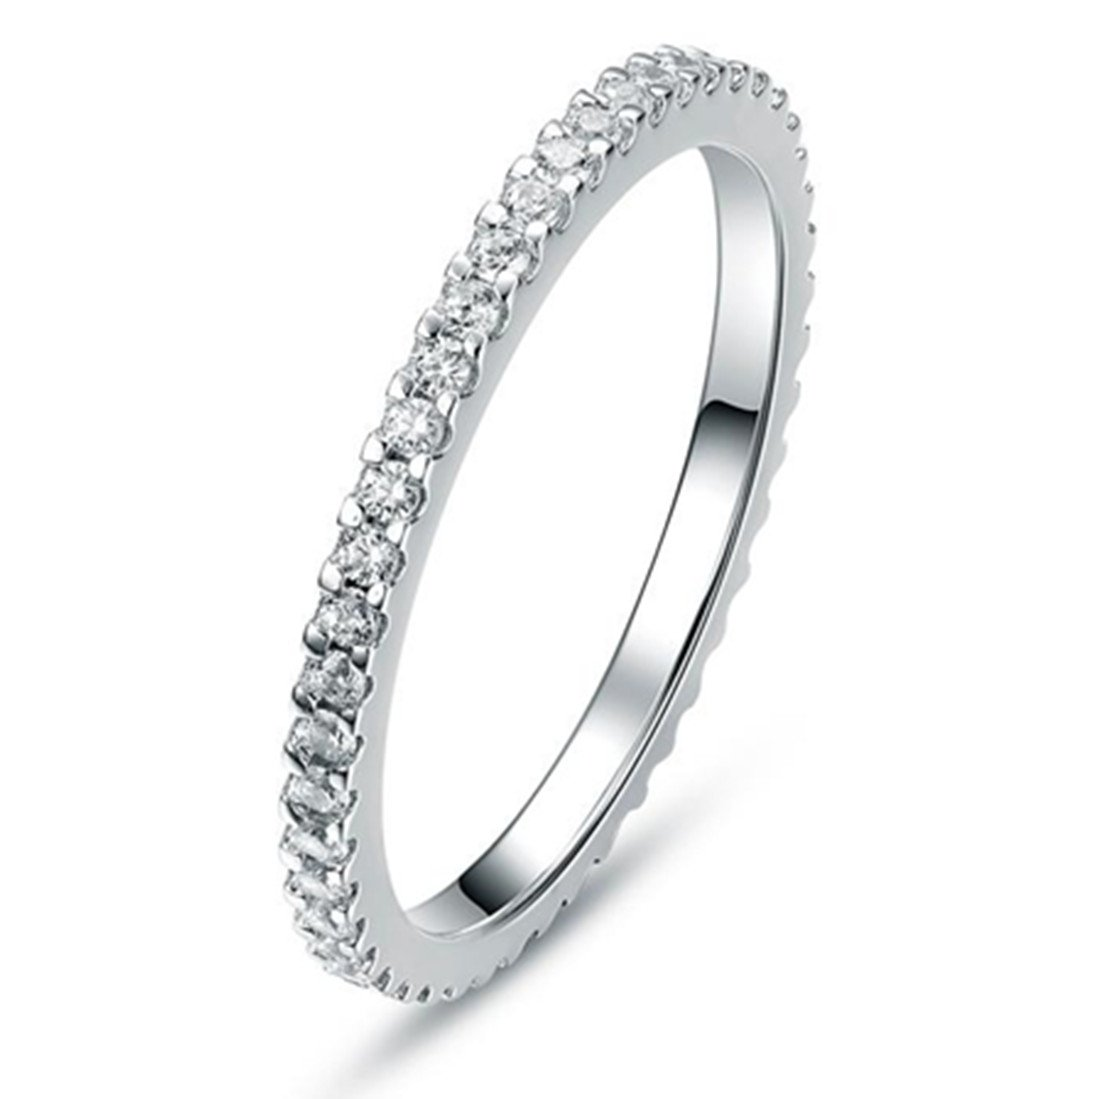 Infinity Wedding Band.Three Man 0 55 Ct Eternity Ring Wedding Band Nscd Simulated Diamond Infinity Ring For Women